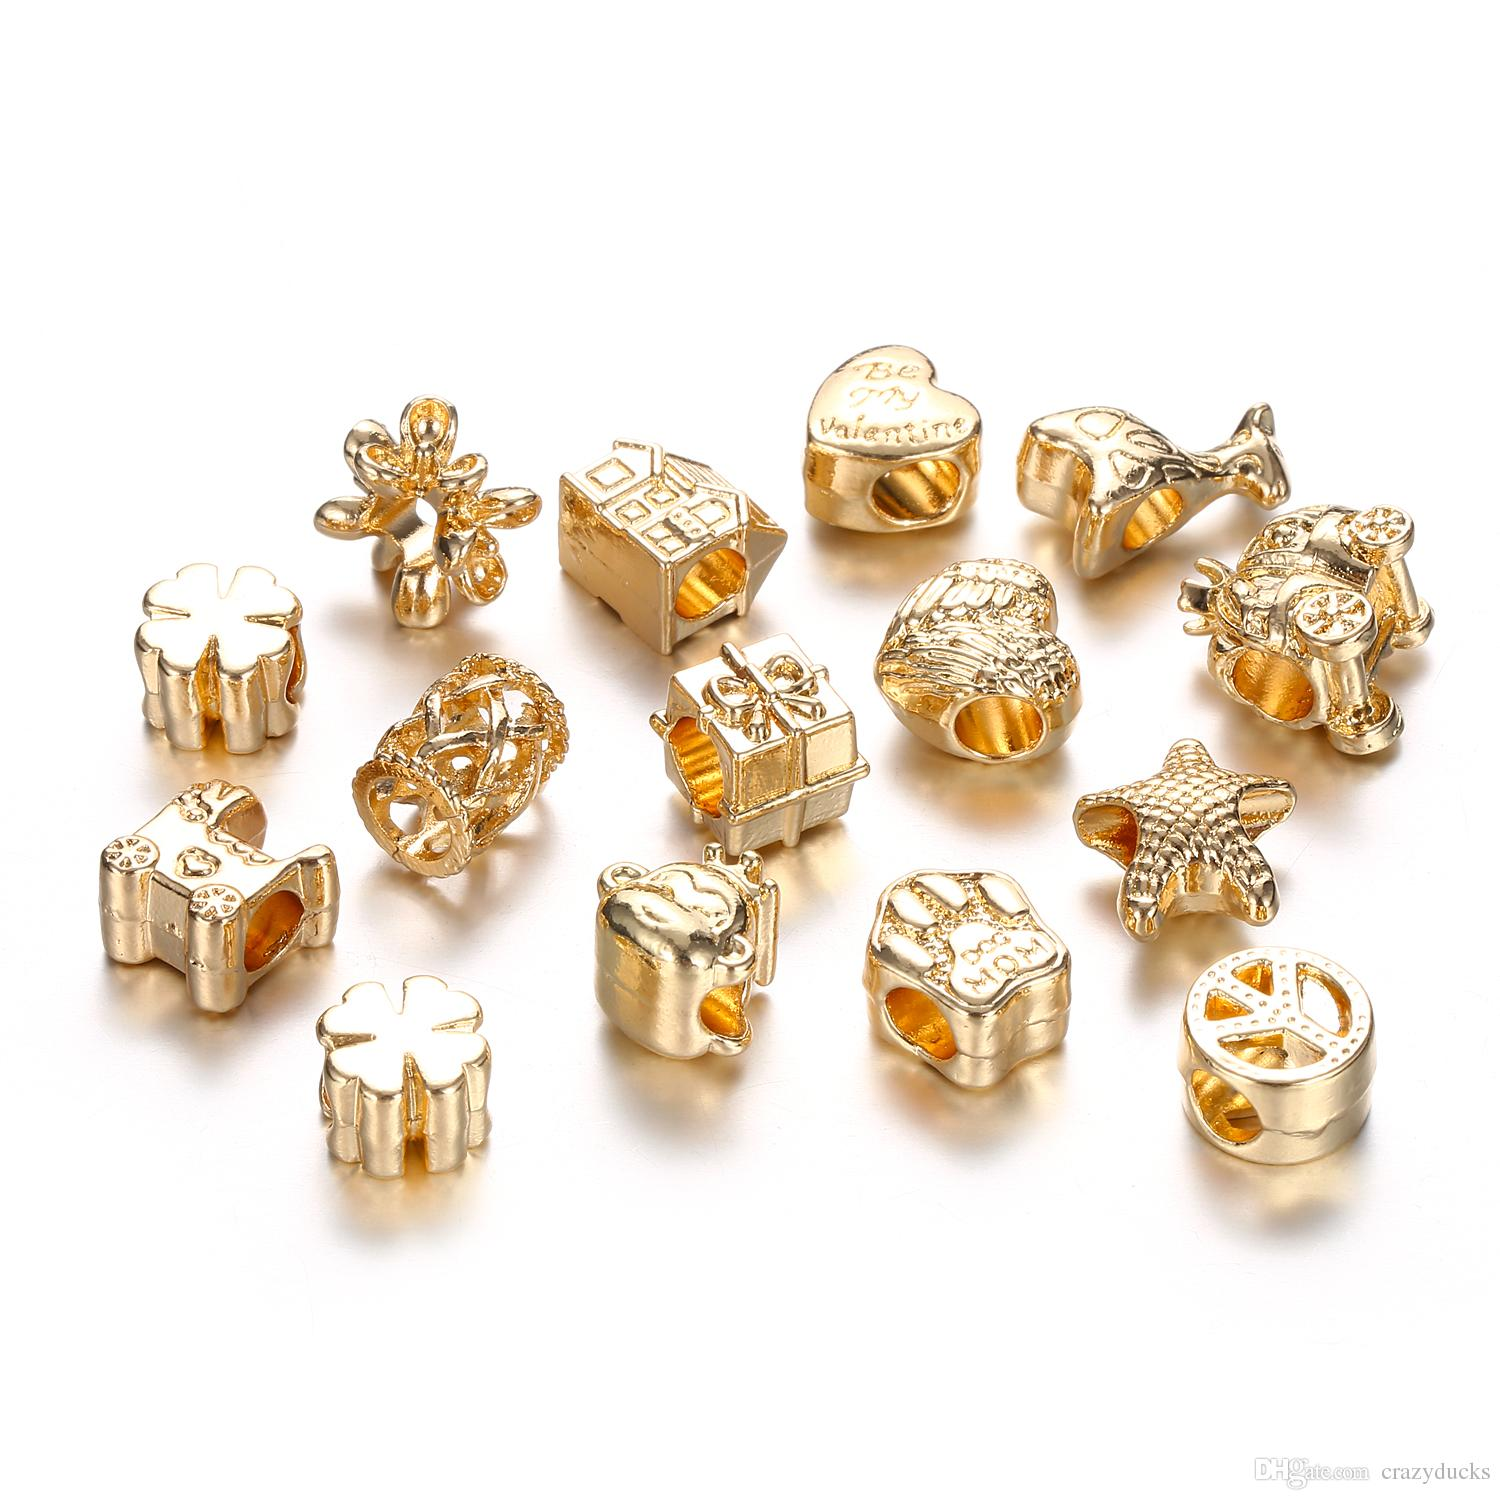 Gold Color Fit Charms Bracelets Bangles Paw House Star Beads European DIY For Jewelry Making MX10 Paw Beads Gold House Beads European Beads line with